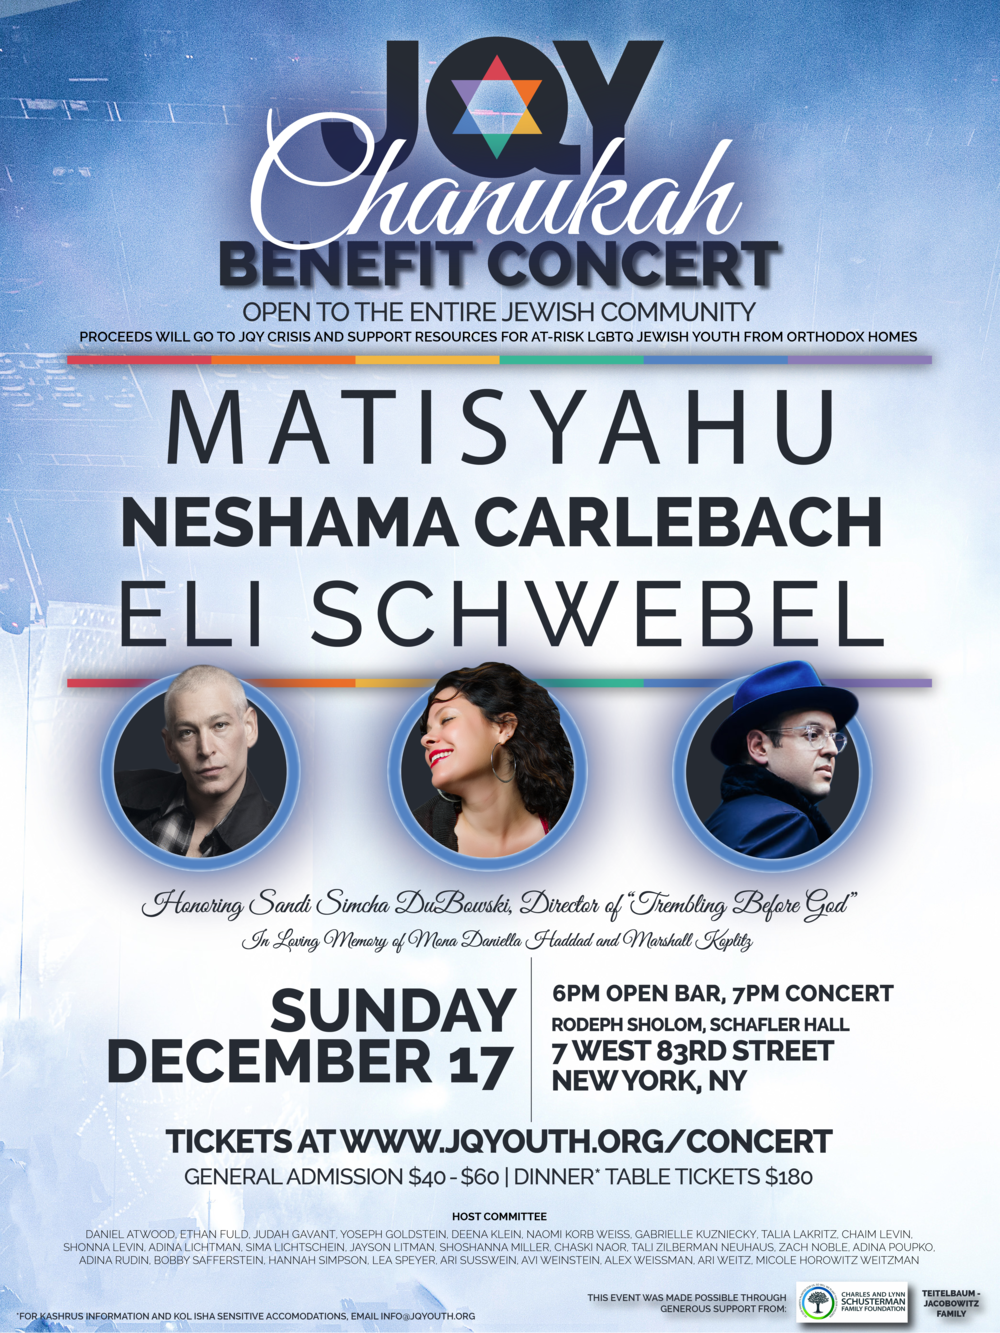 Chanukah Benefit Concert - Concert Poster, Jewish Queer Youth